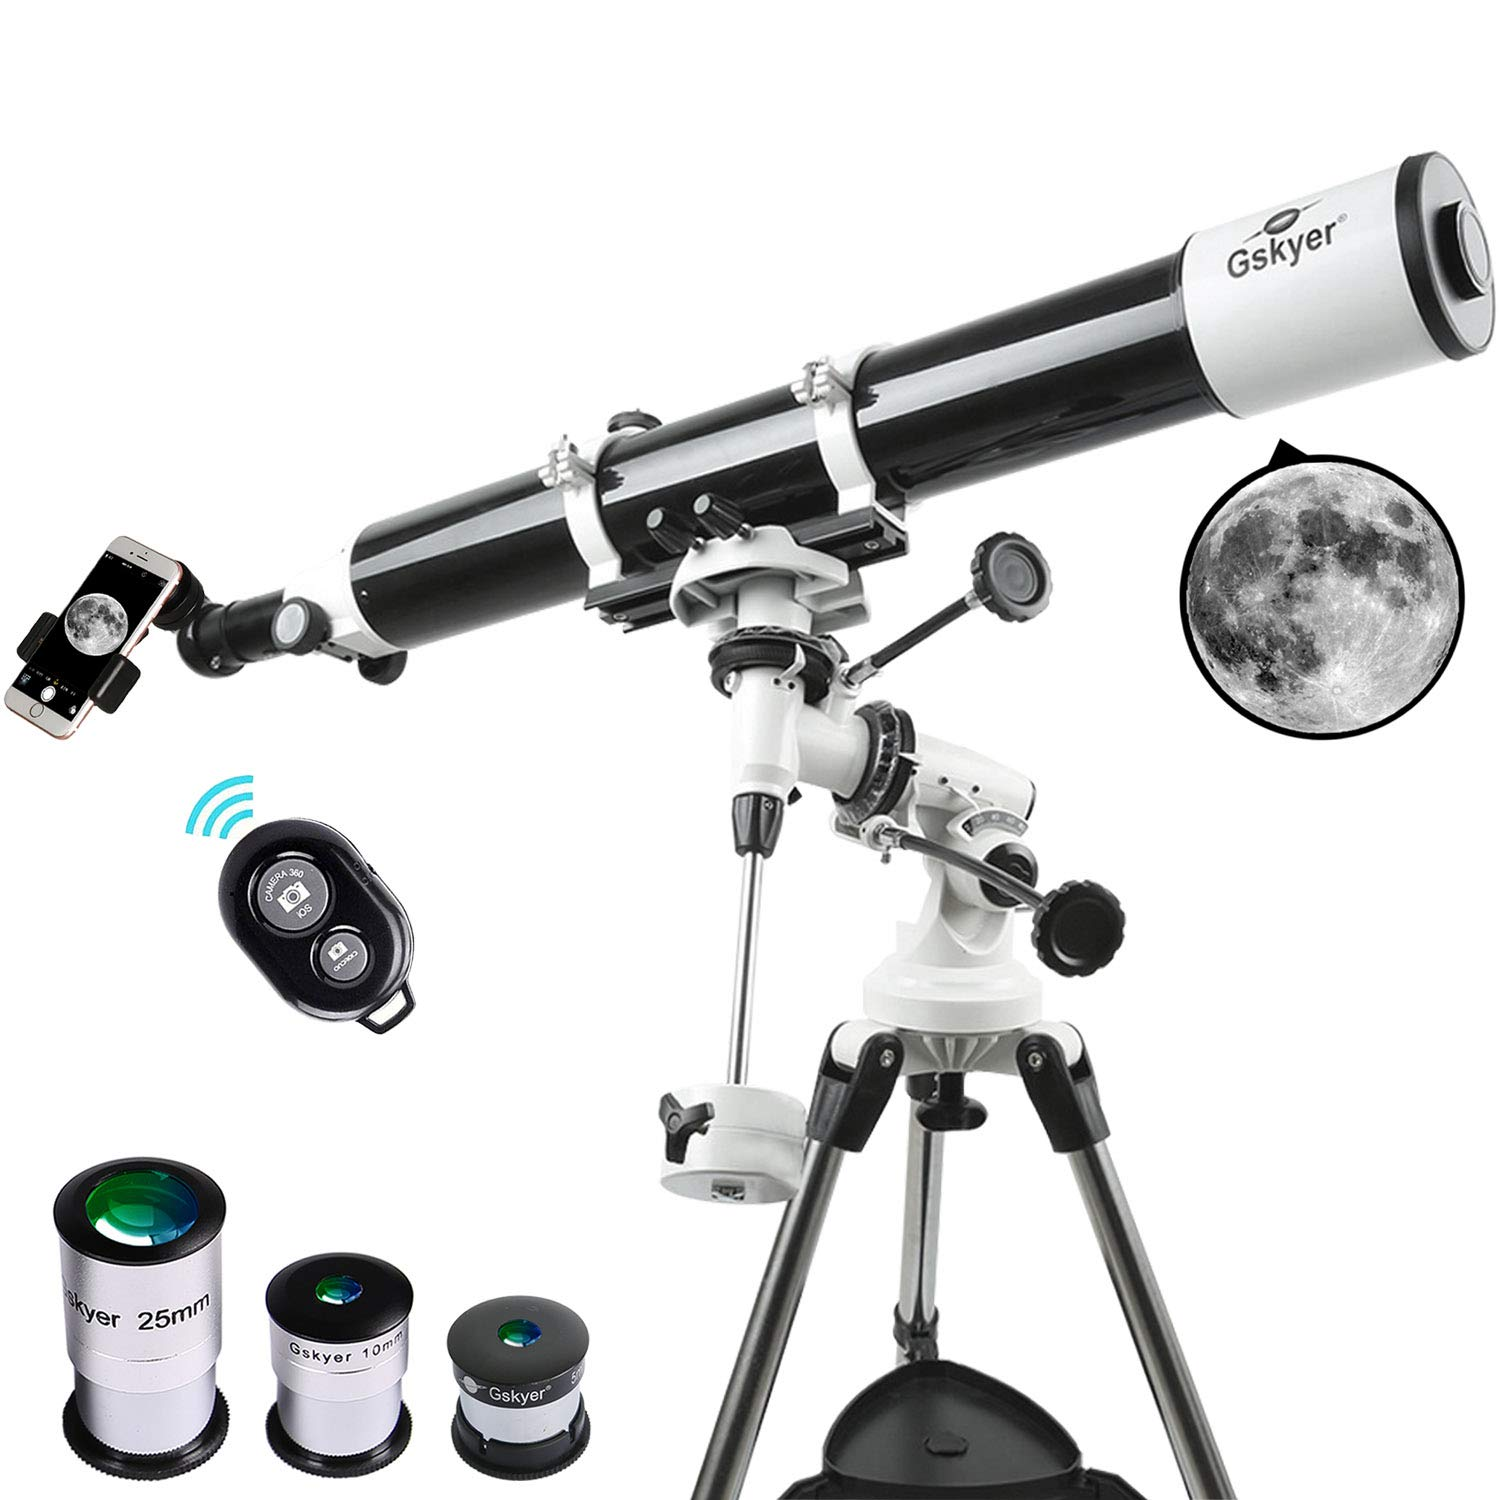 Gskyer Telescope, Astronomy Refractor Telescope, 80mm Aperture Travel Scope for Kids & Beginners - with Smartphone Adapter & Wireless Camera Remote by Gskyer